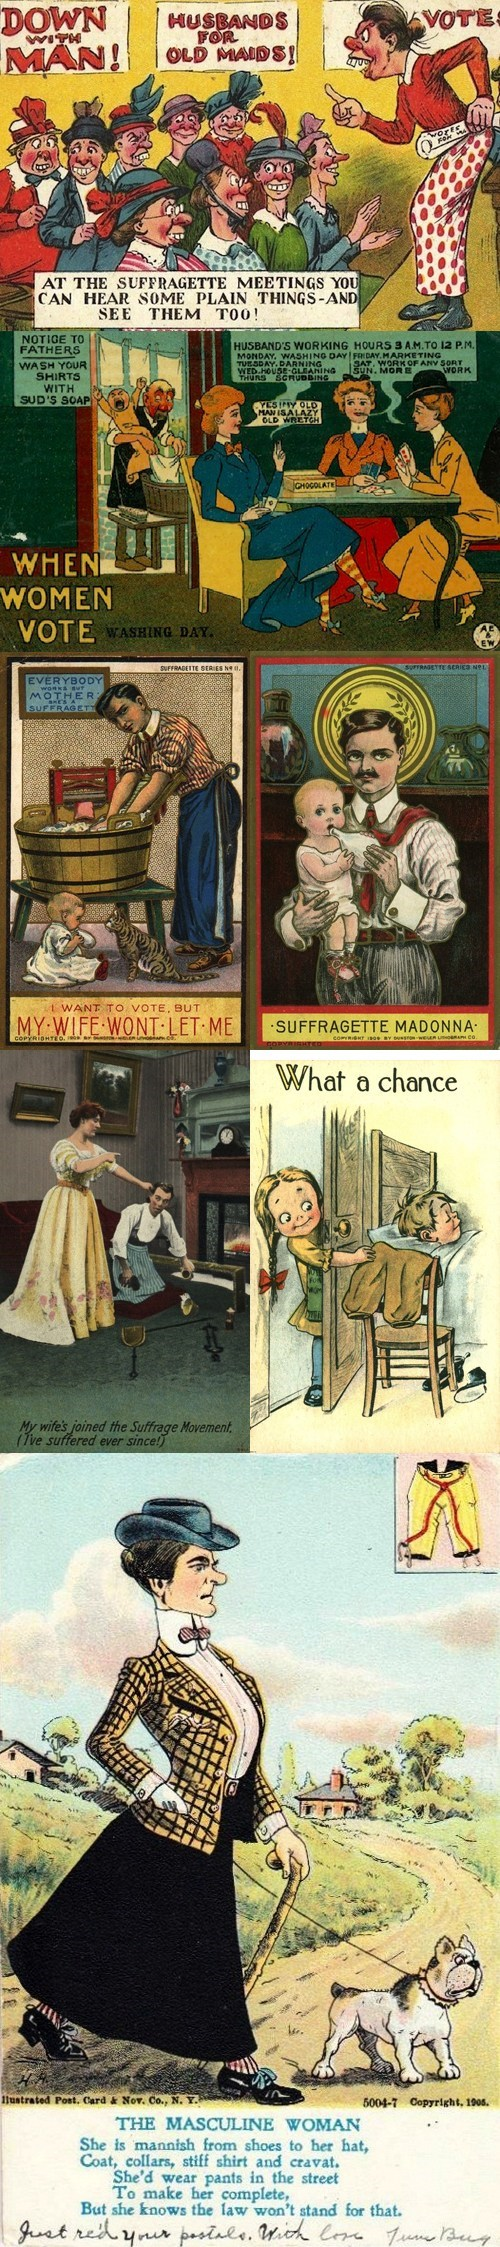 history womens-suffrage past voting postcards